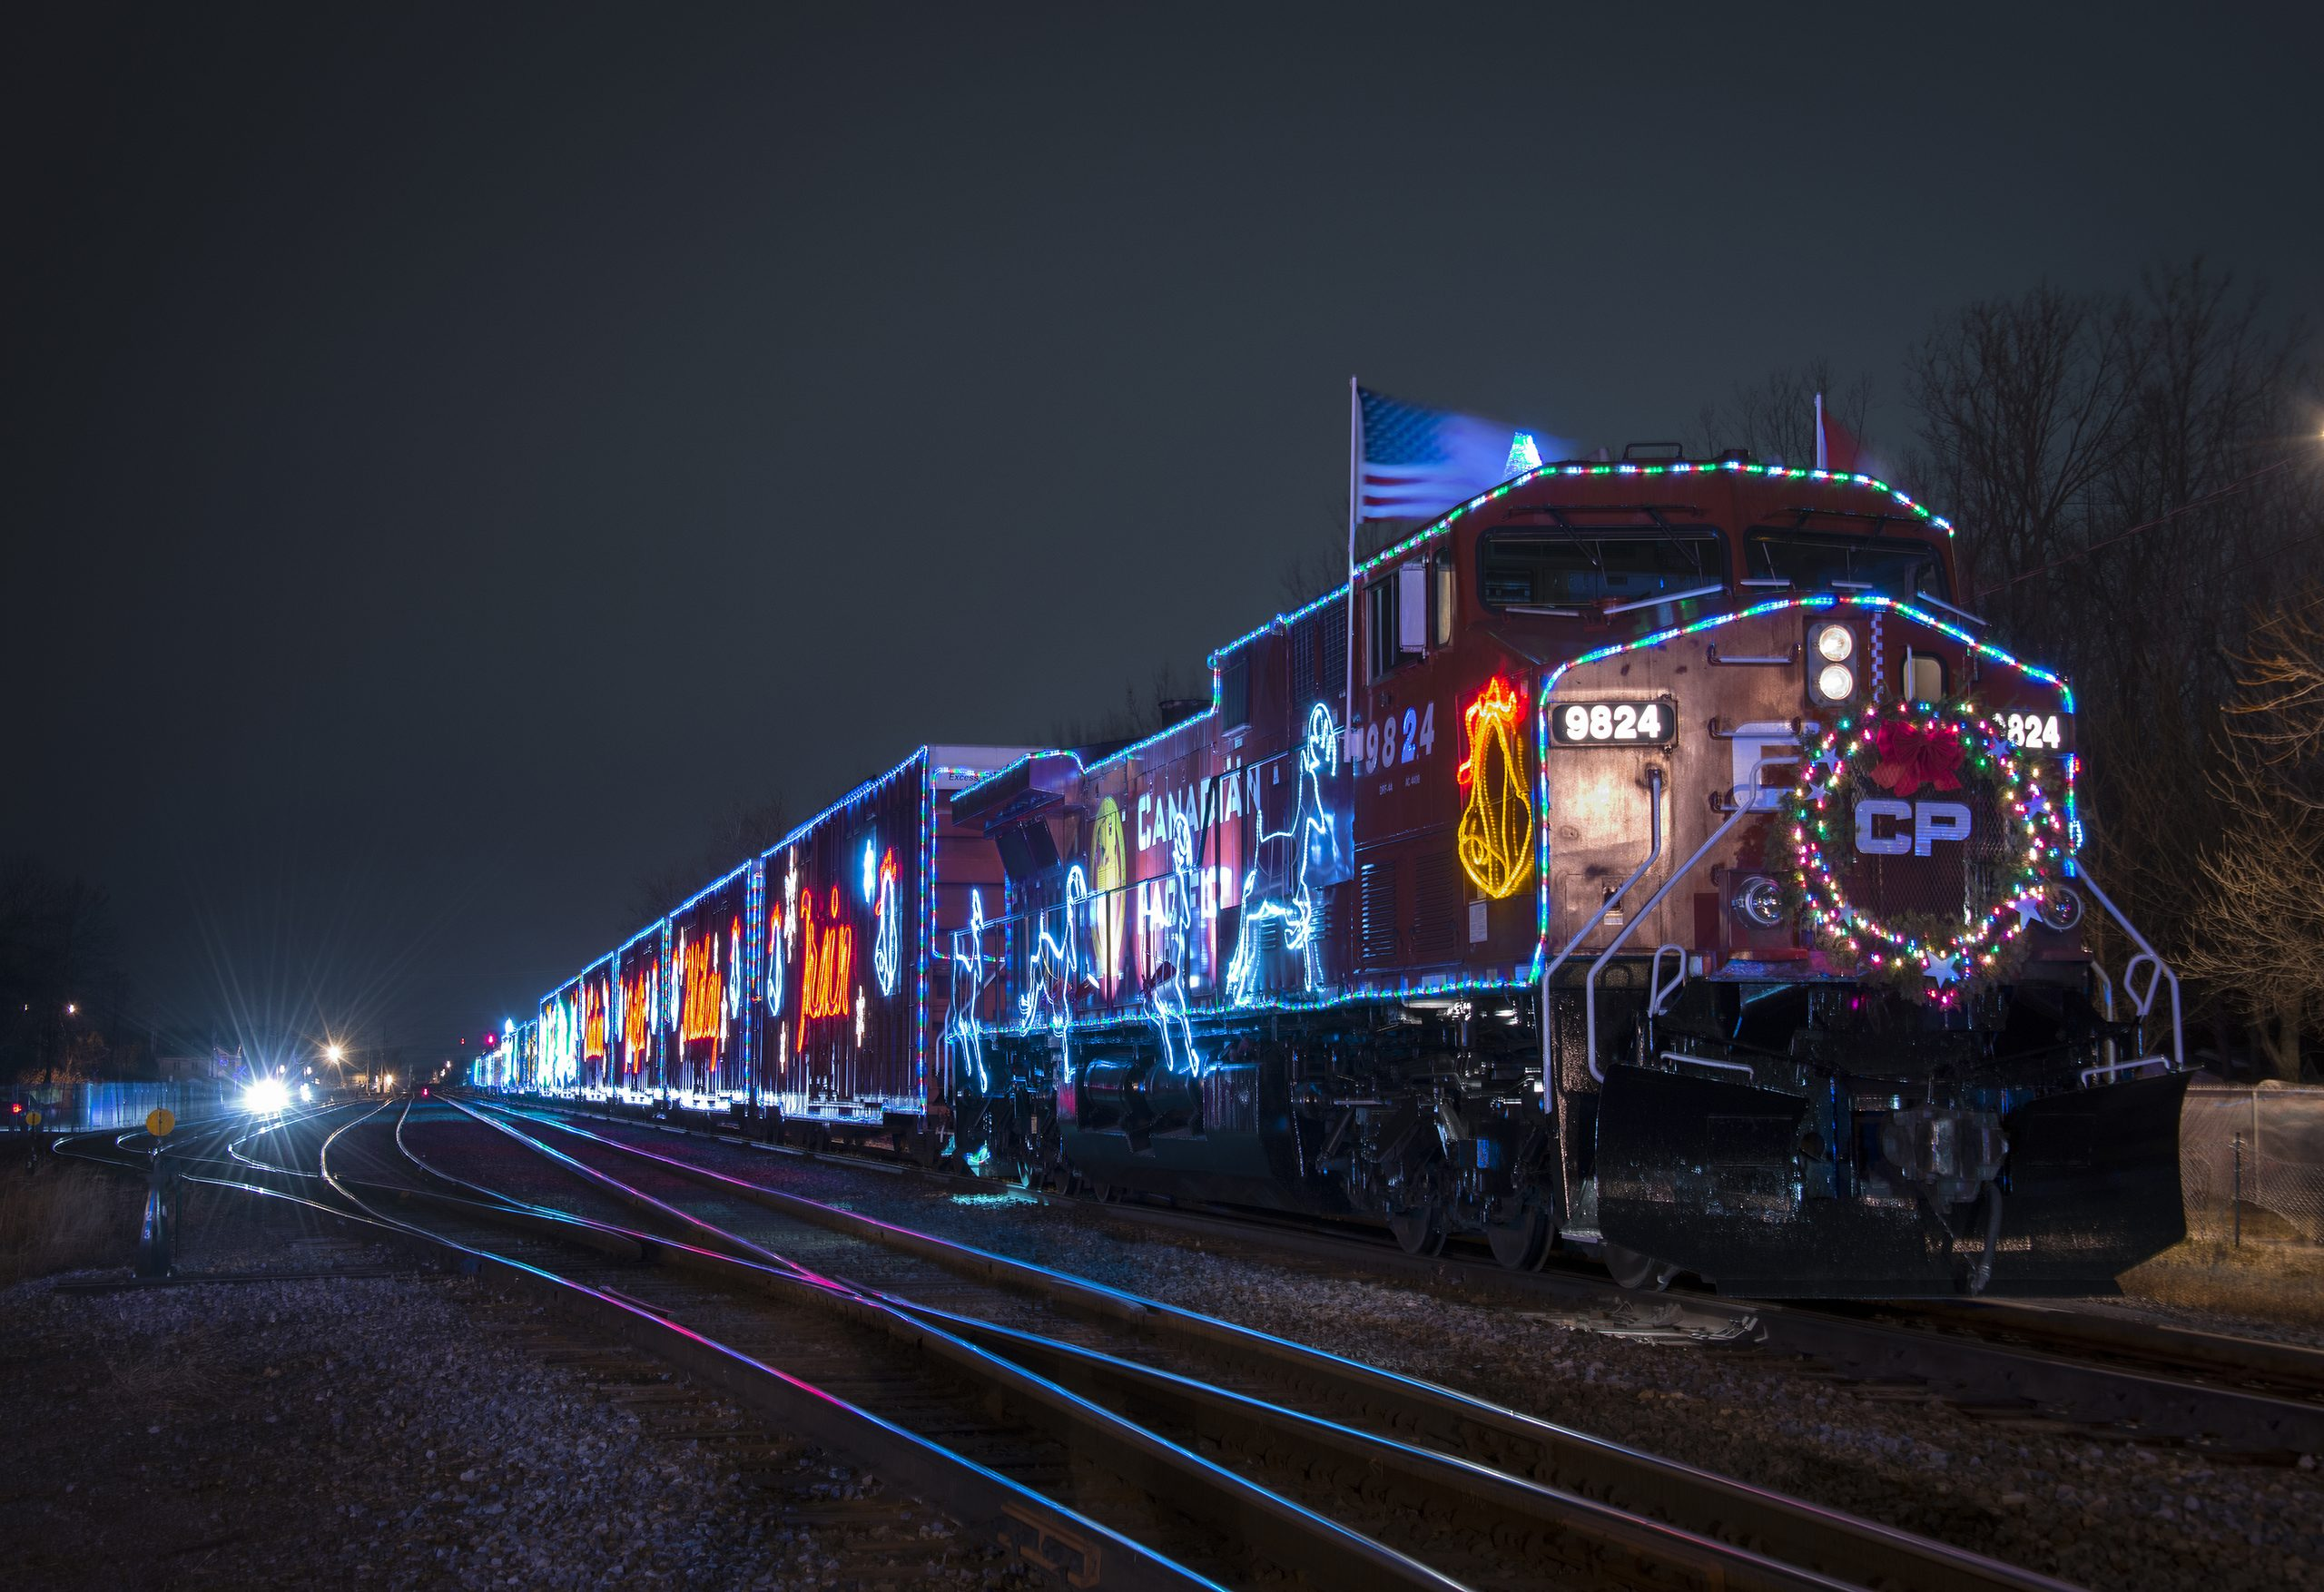 DECEMBER has begun and the Christmas FUN has begun!